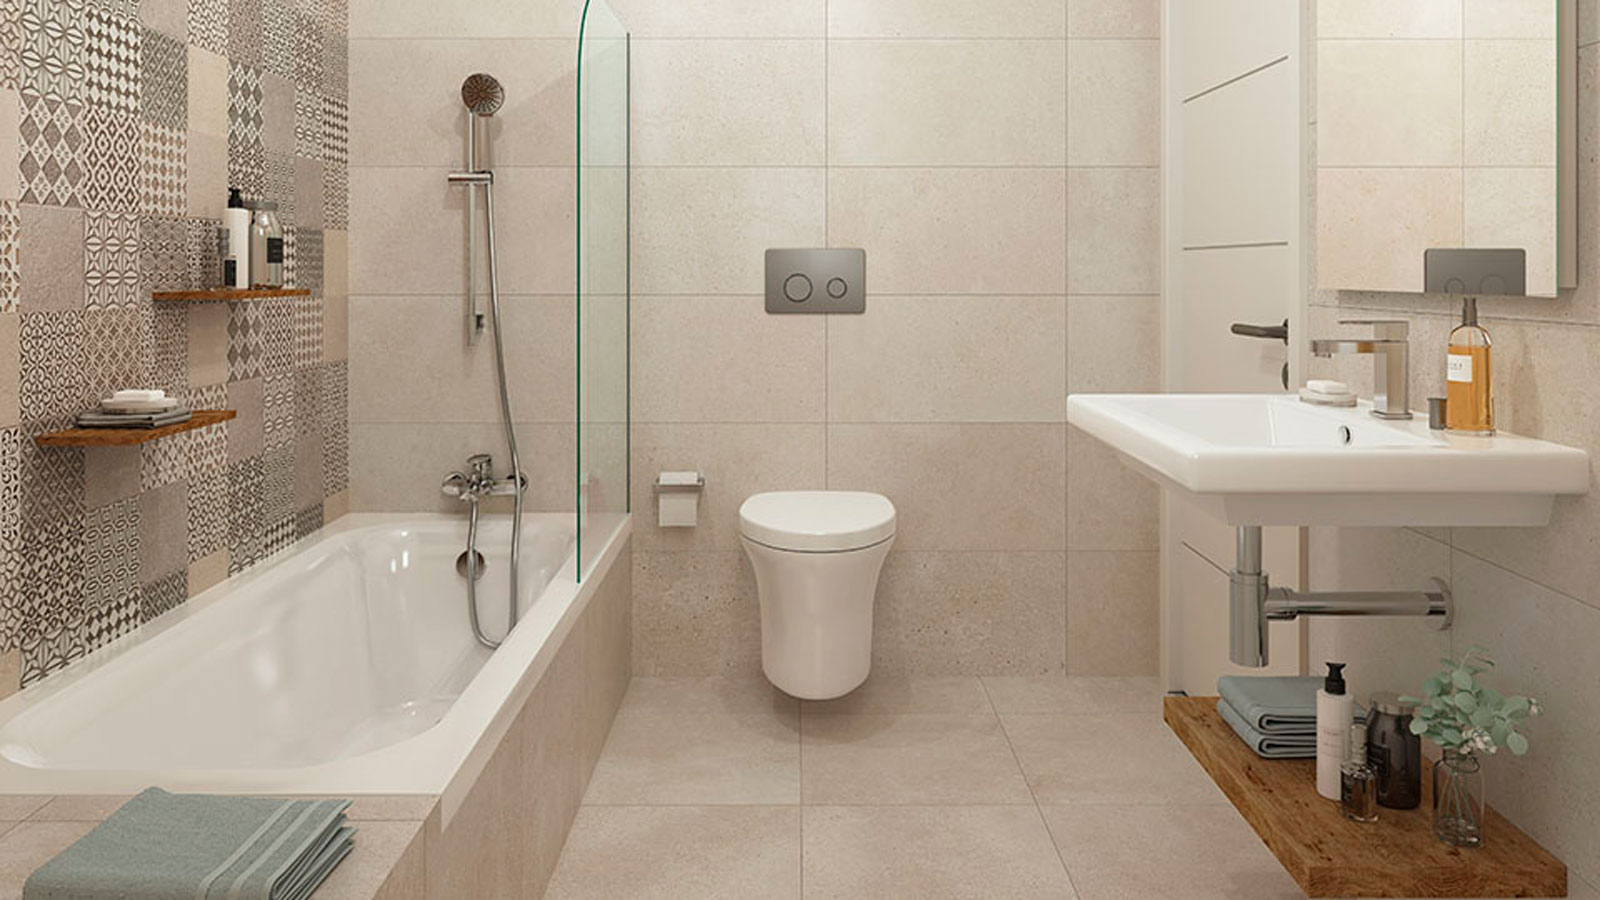 Bath-mixer-tap-with-shower-head